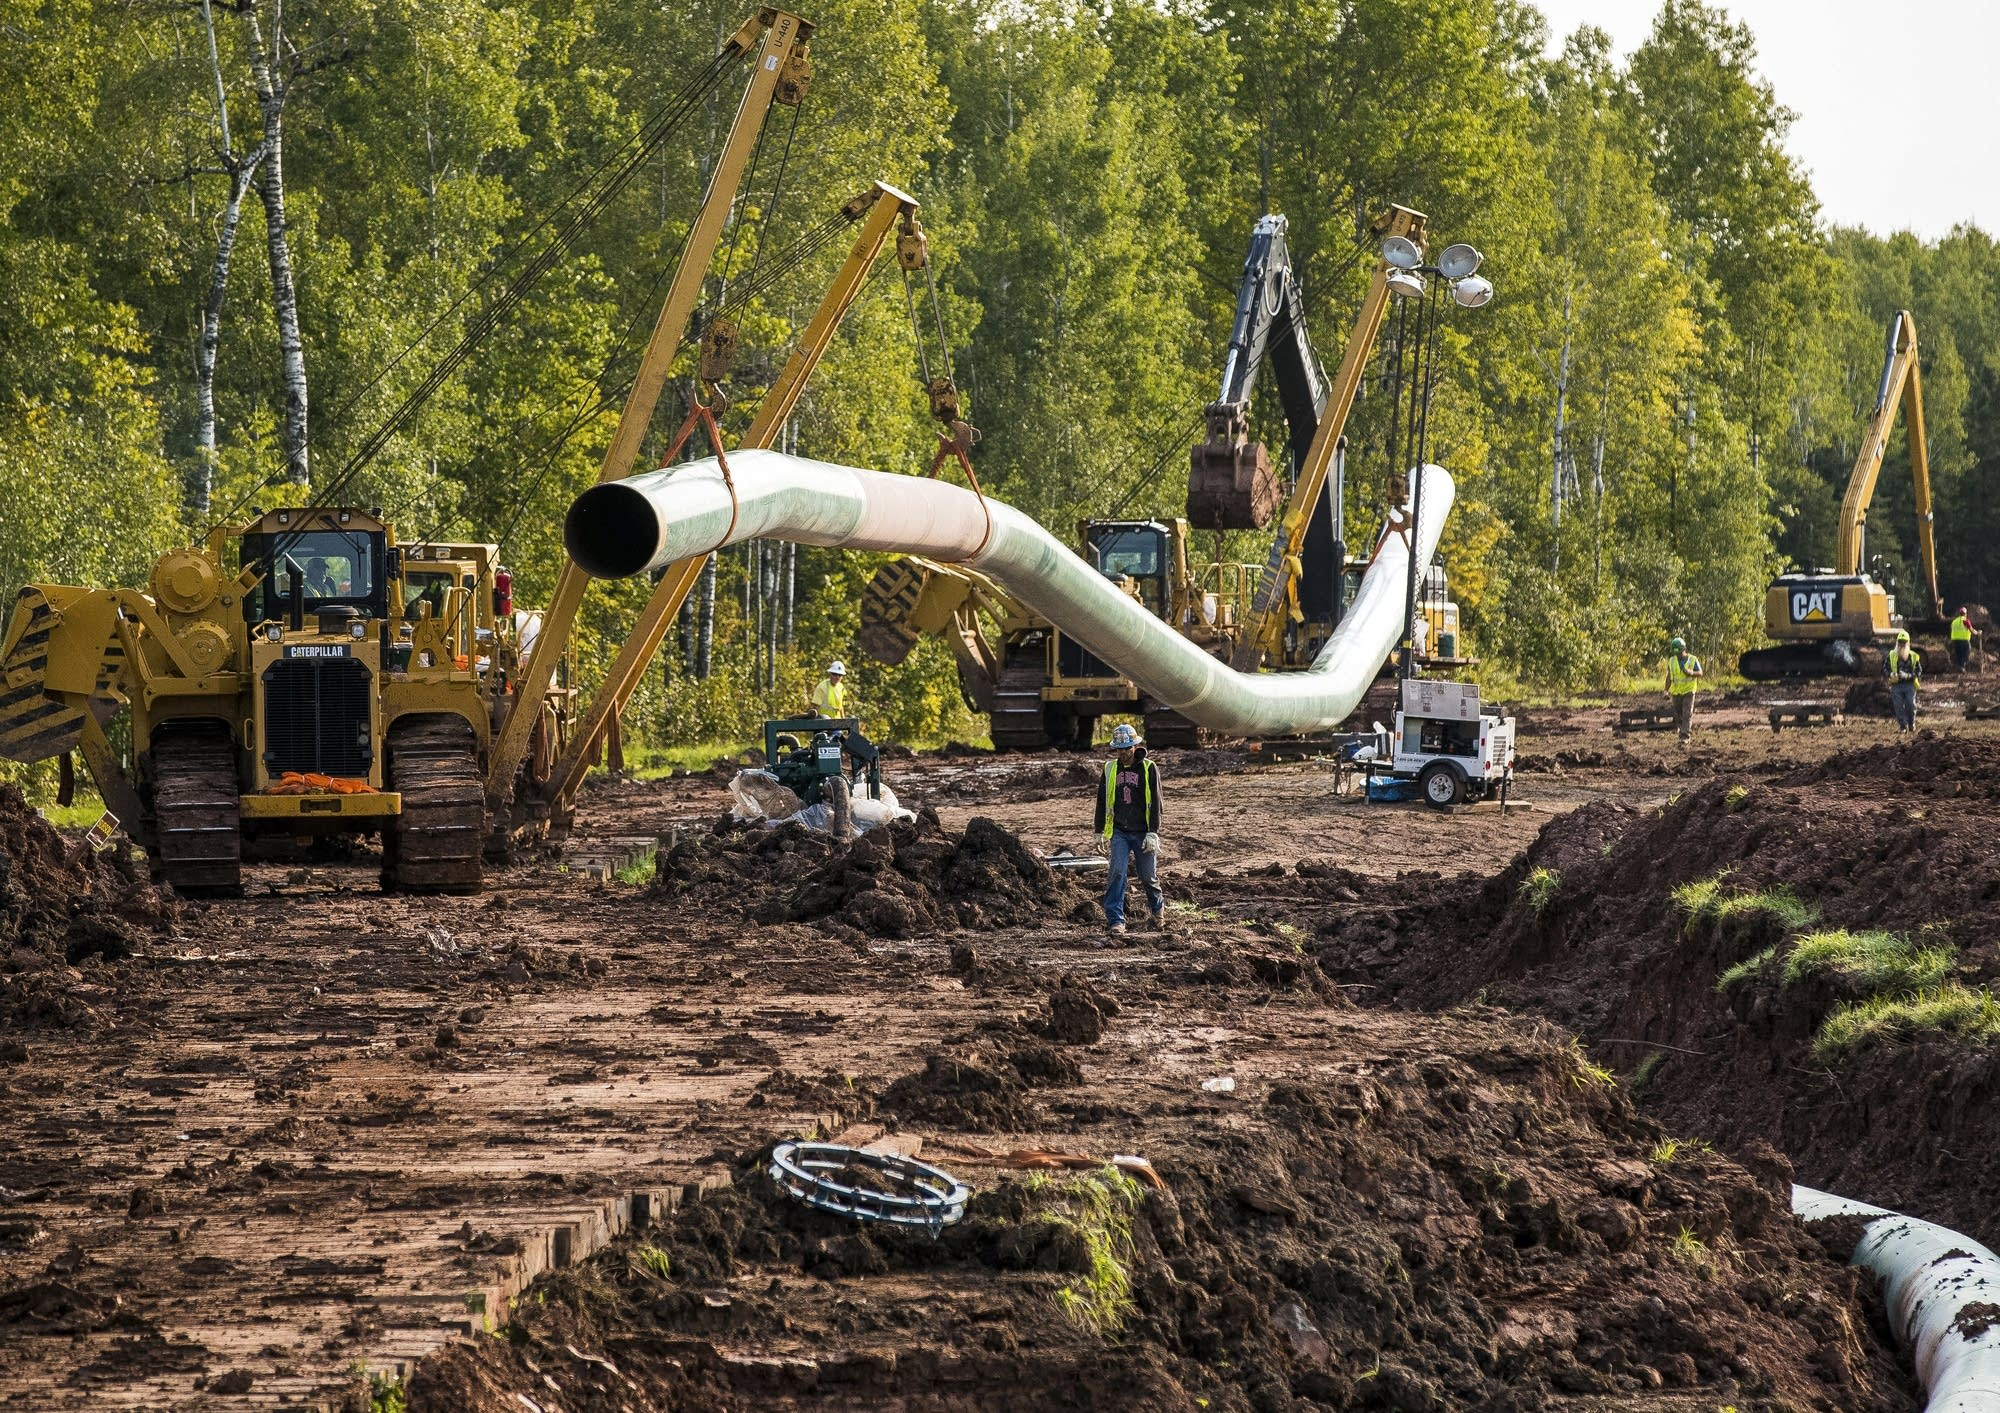 Construction vehicles transport a new section of pipeline.